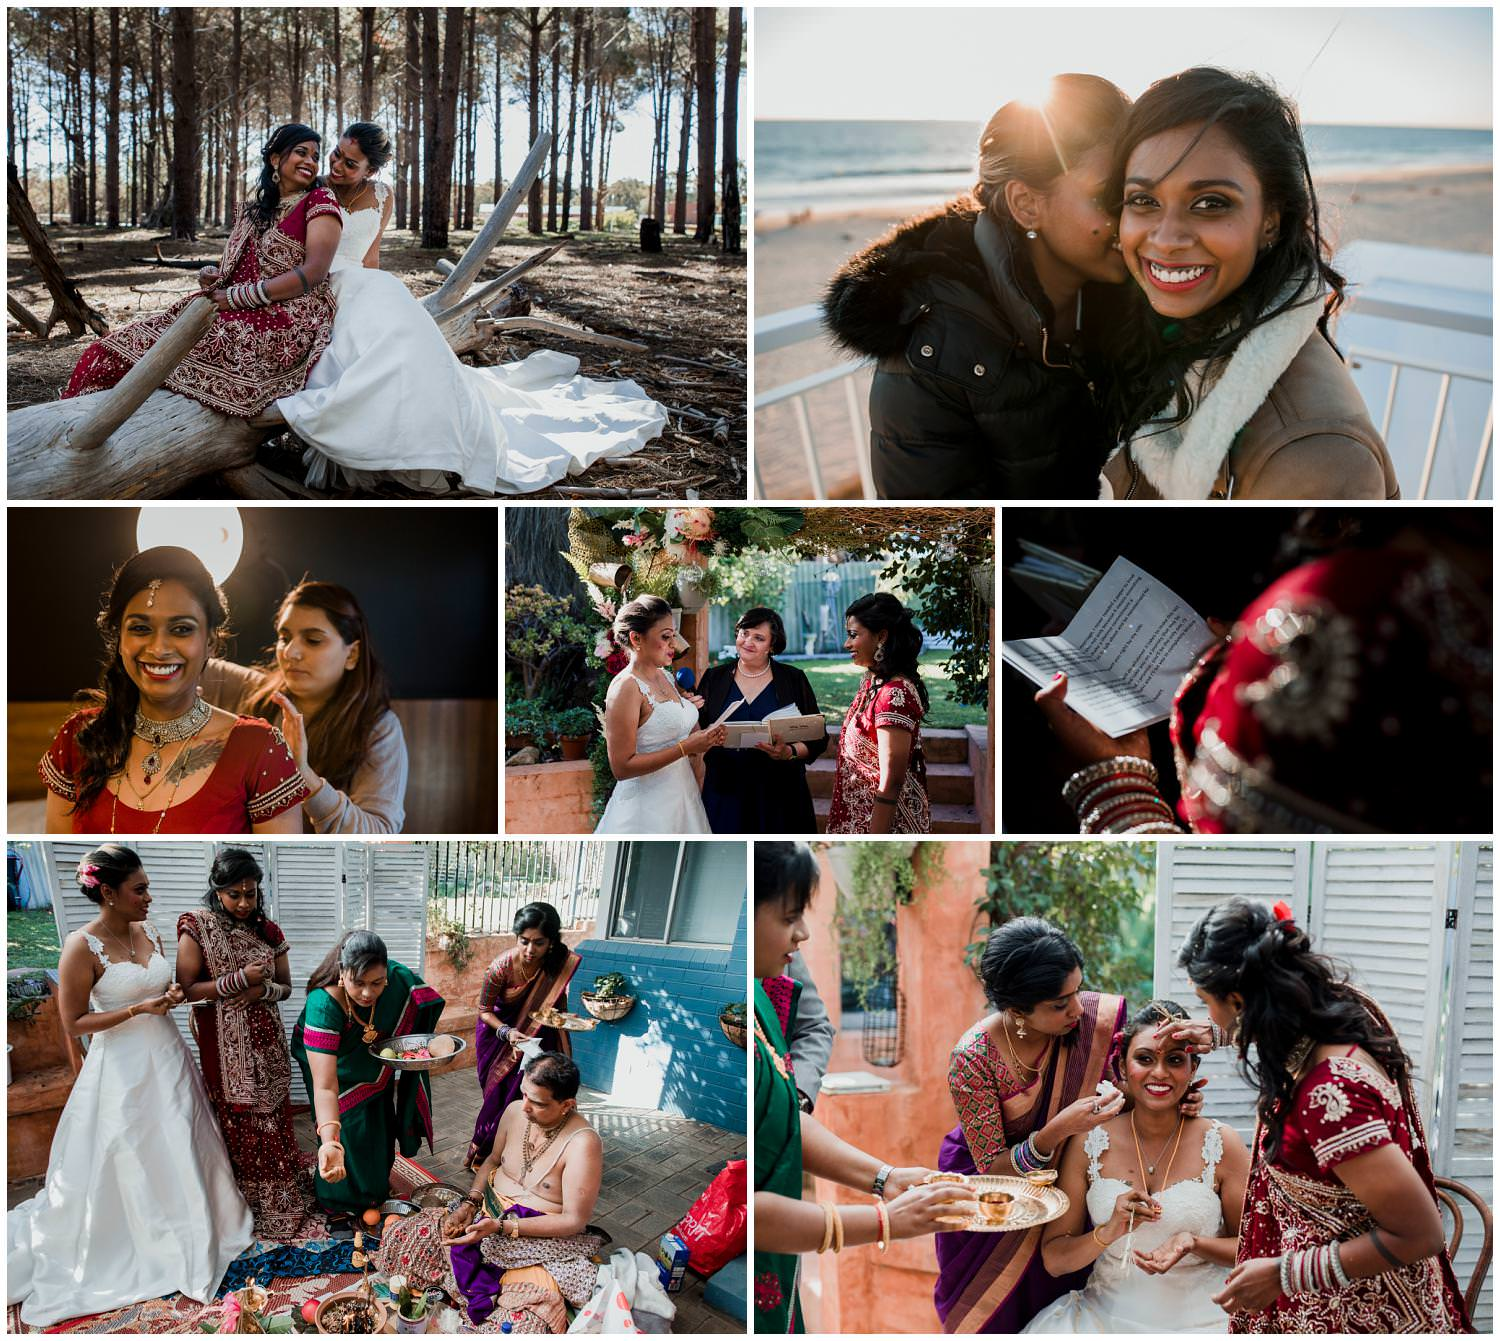 kaitiri + San - Perth Hindu Wedding